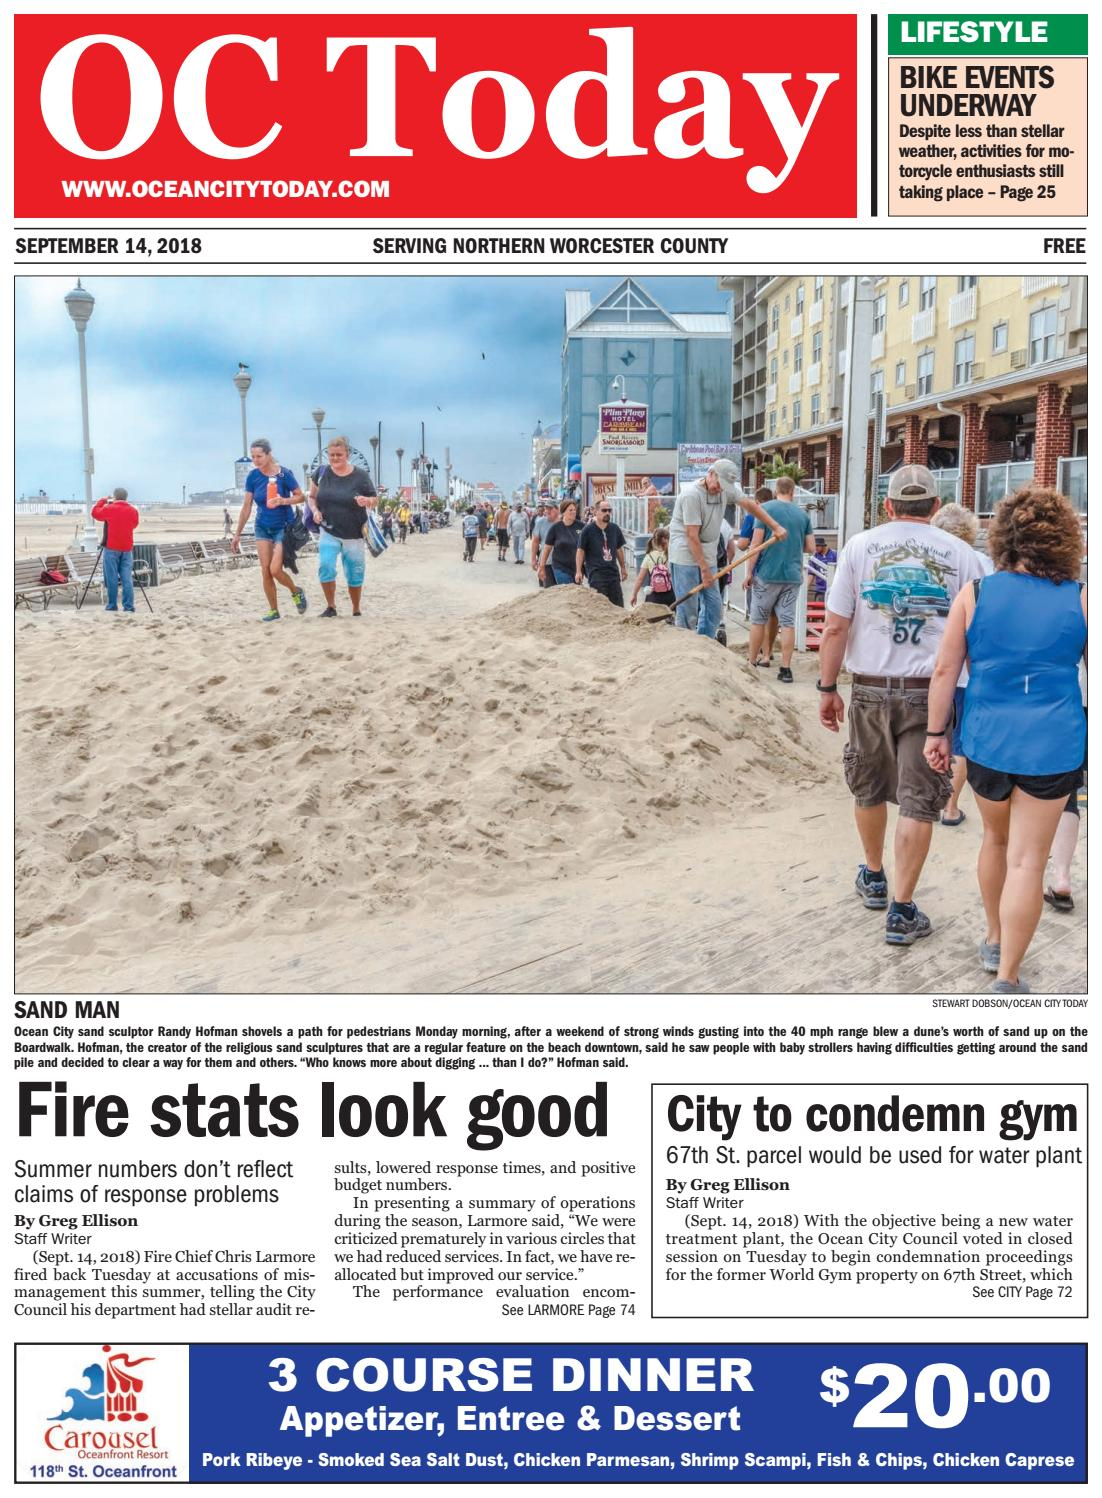 9/14/18 Ocean City Today by ocean city today - issuu